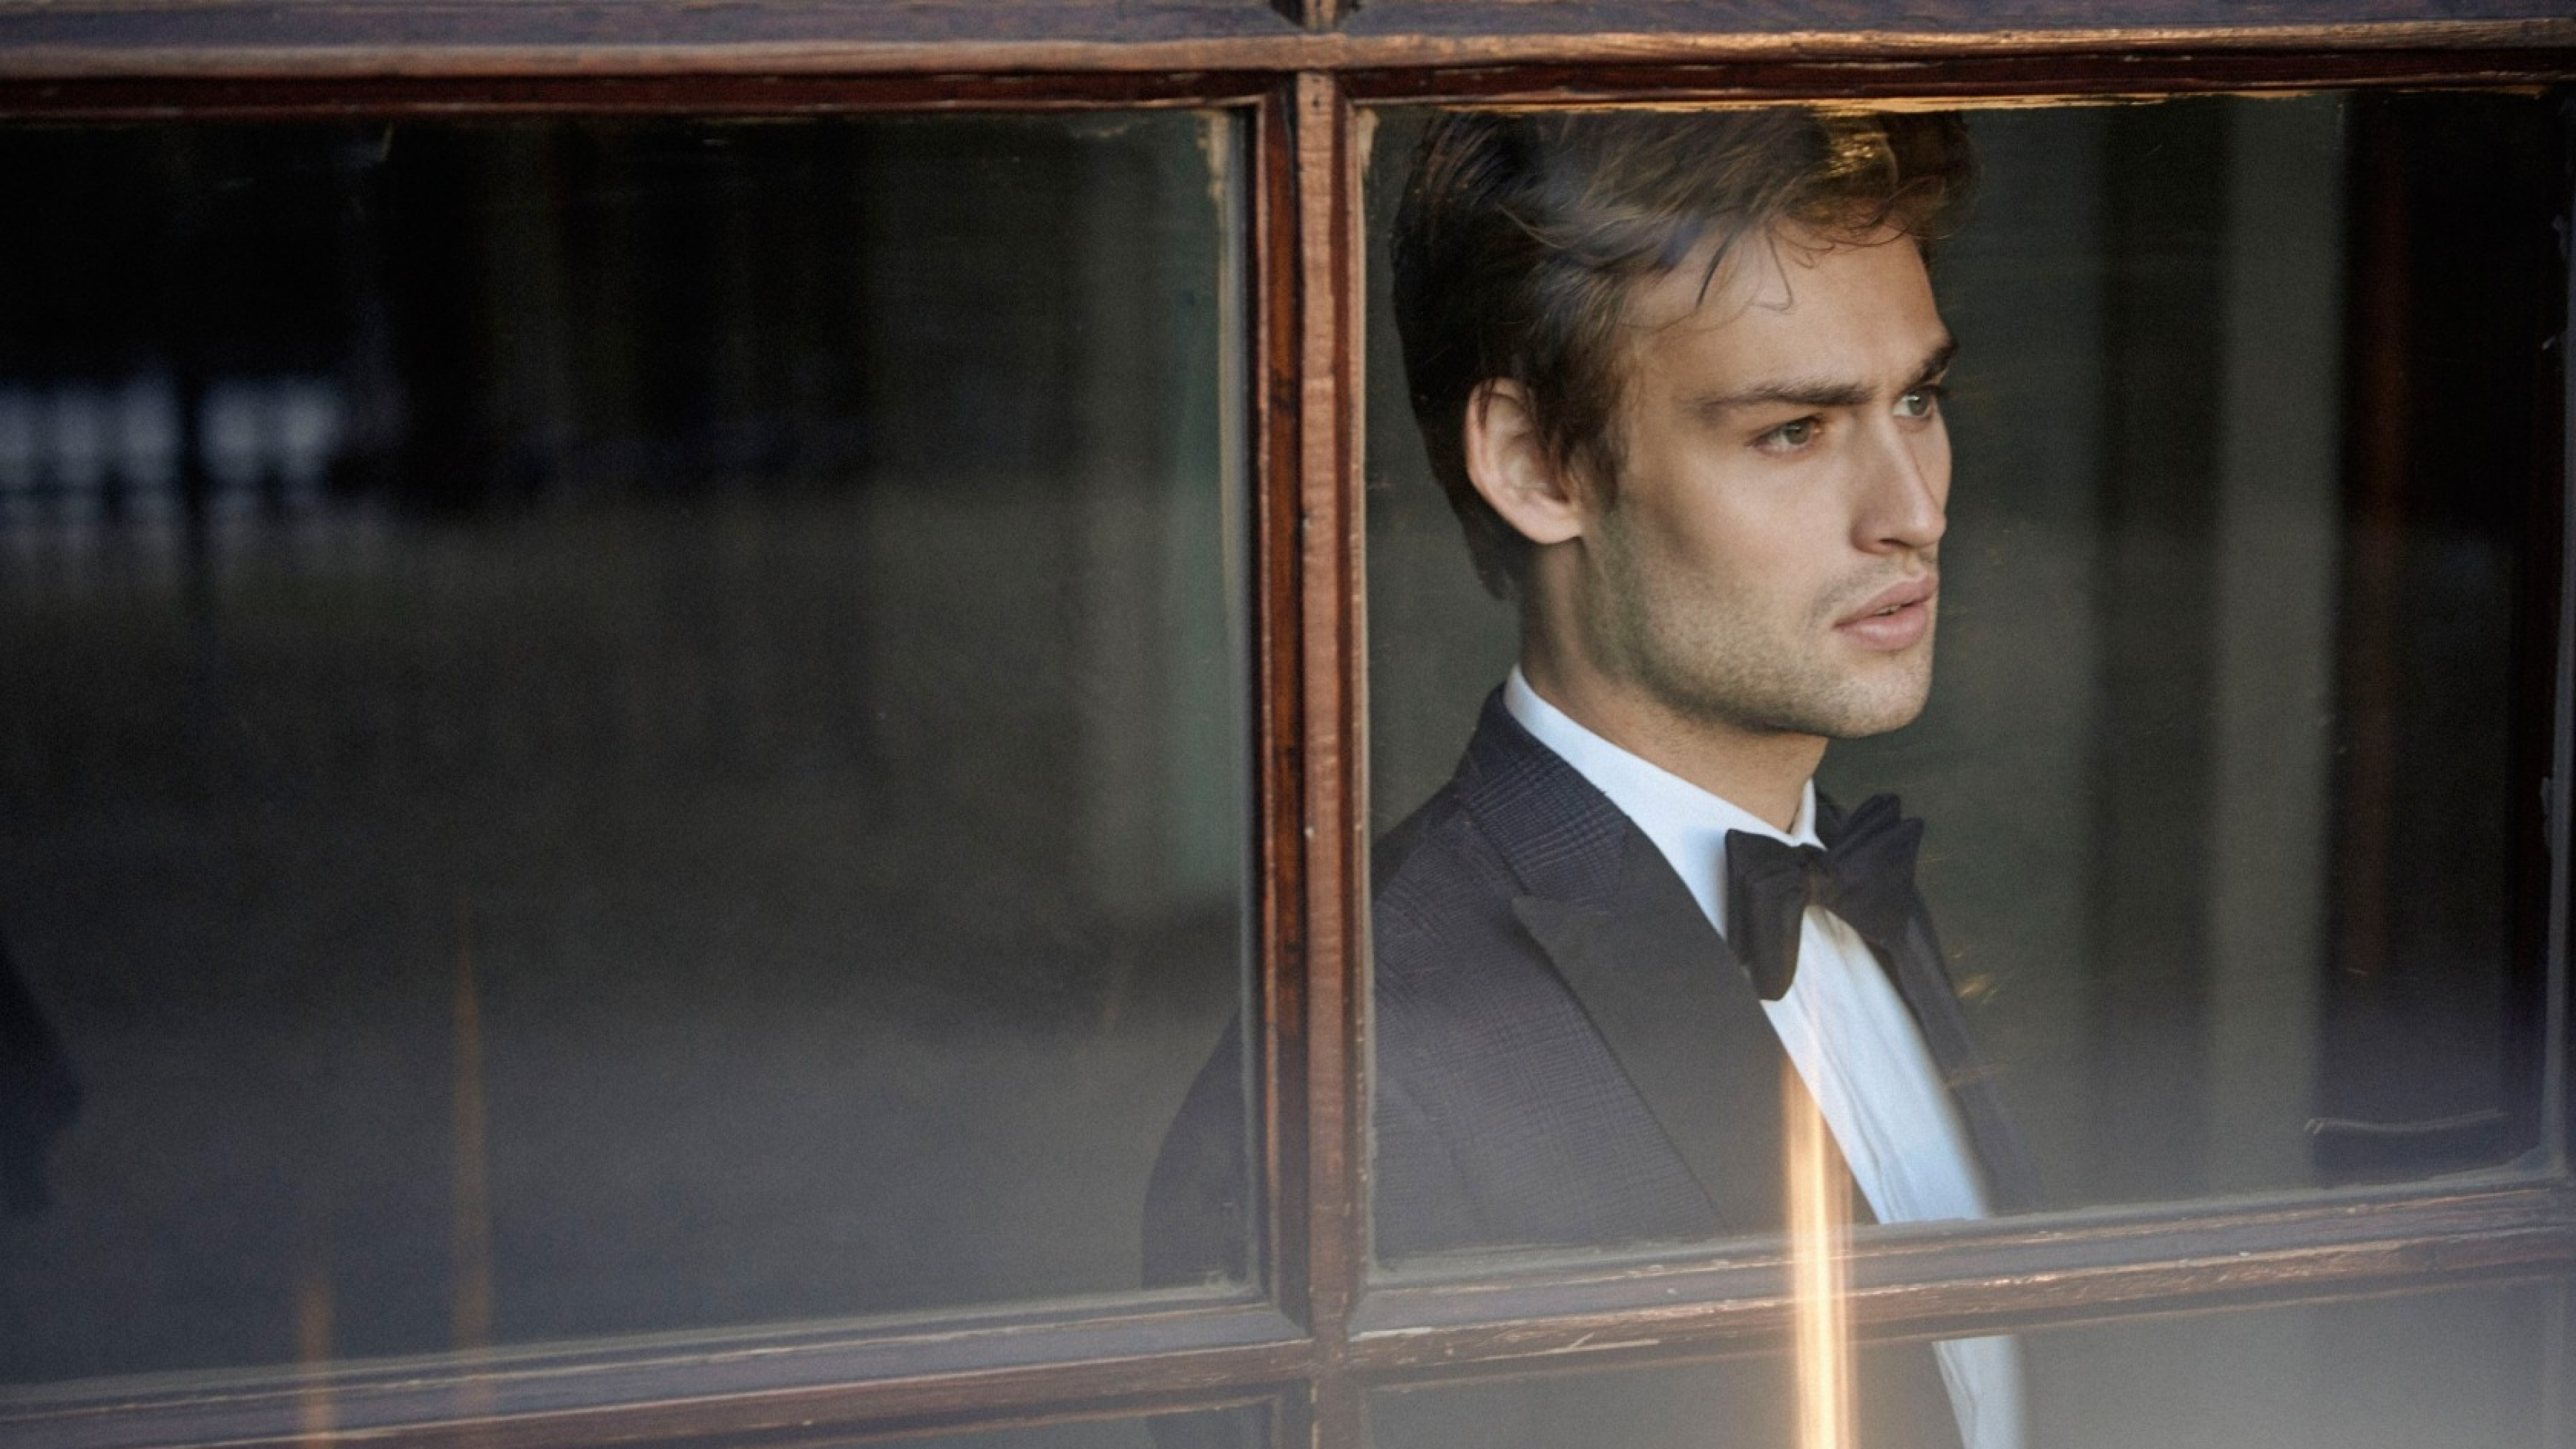 3840x2160 - Douglas Booth Wallpapers 17